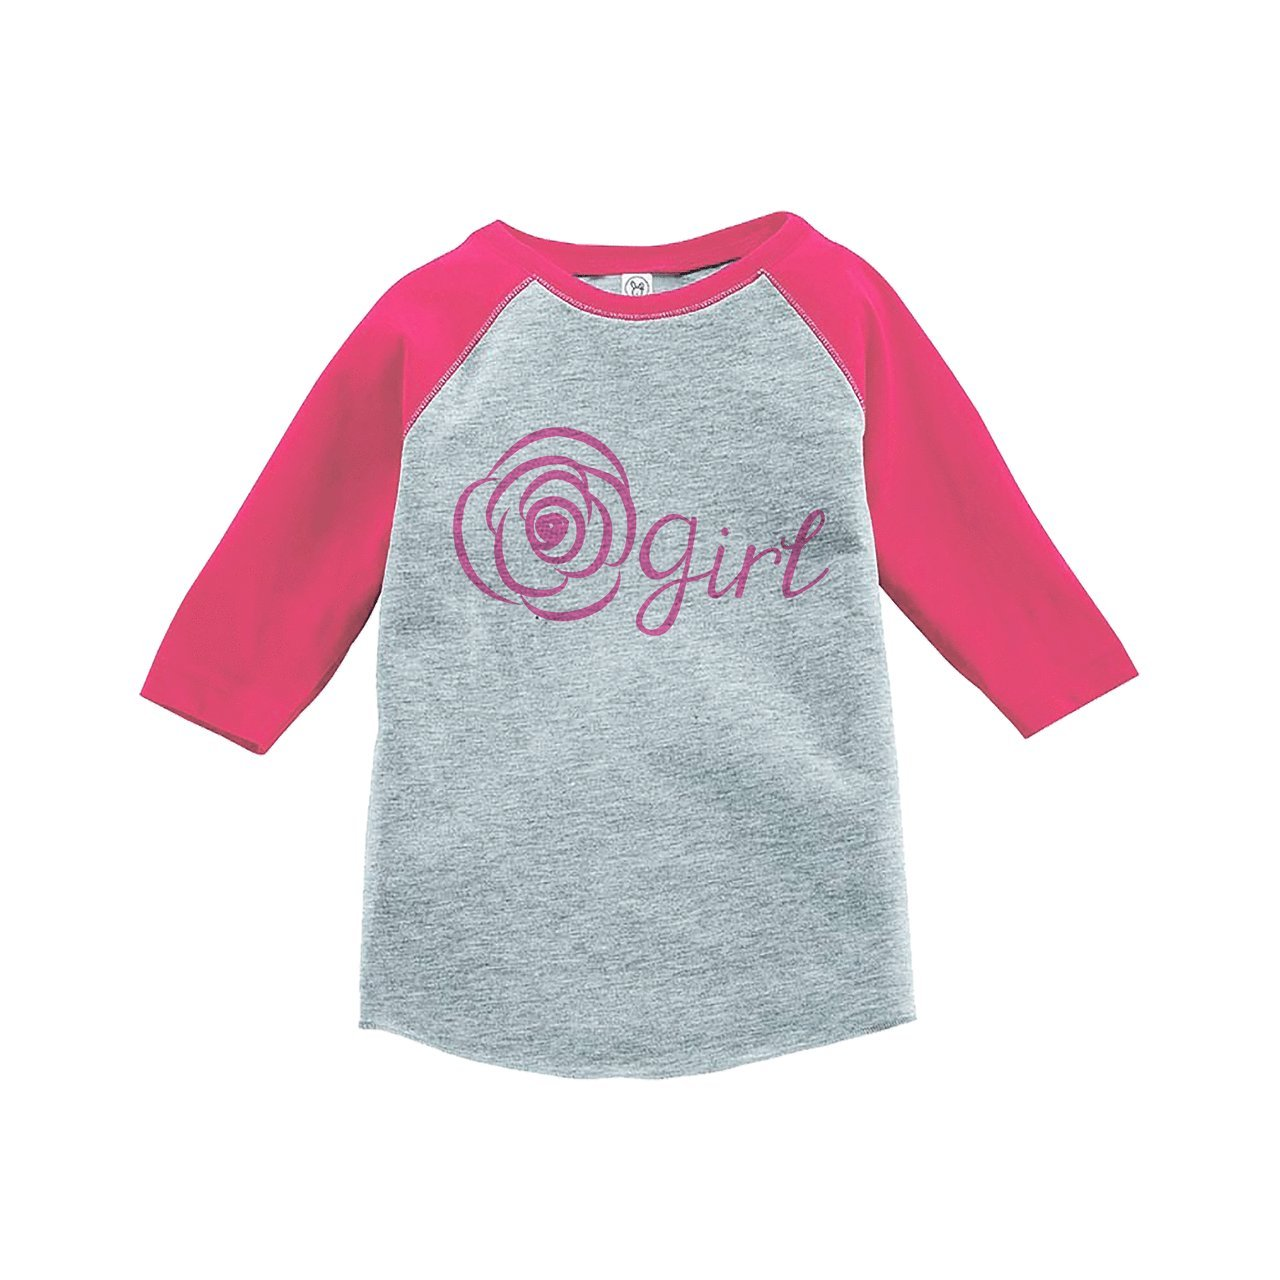 7 ate 9 Apparel Youth Girl's Flower Girl Wedding Pink Raglan MD by 7 ate 9 Apparel (Image #1)